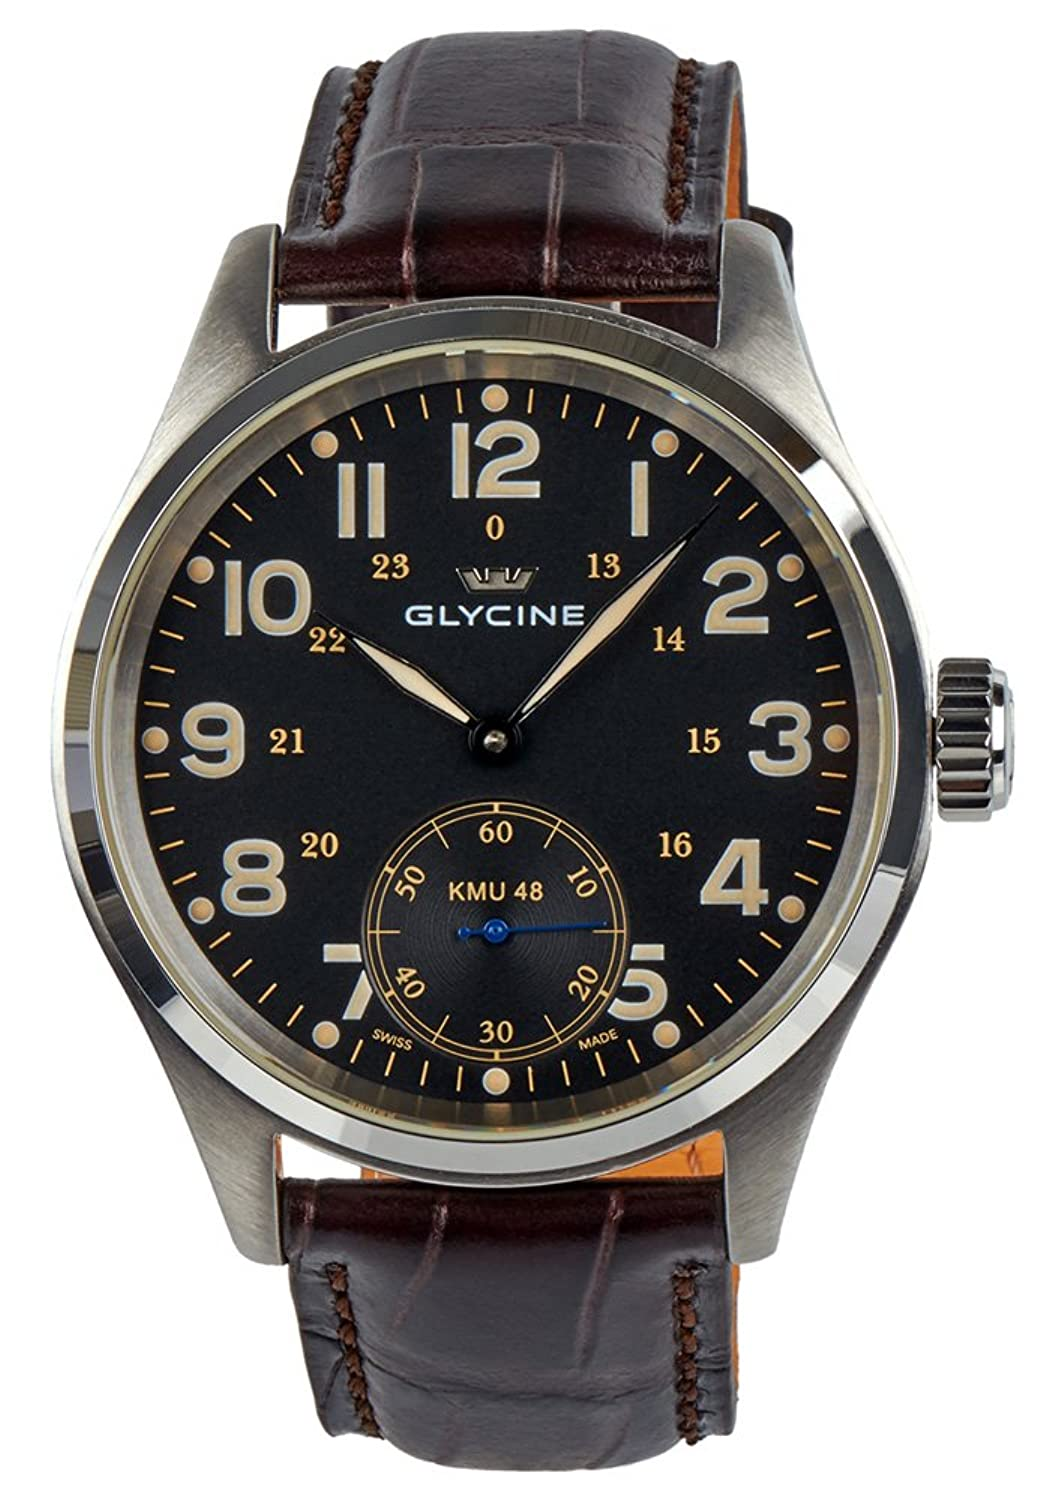 Glycine KMU 48 Kriegs Marine Uhren Manual Wind Stainless Steel Herren Uhr 3906.19AT LB33